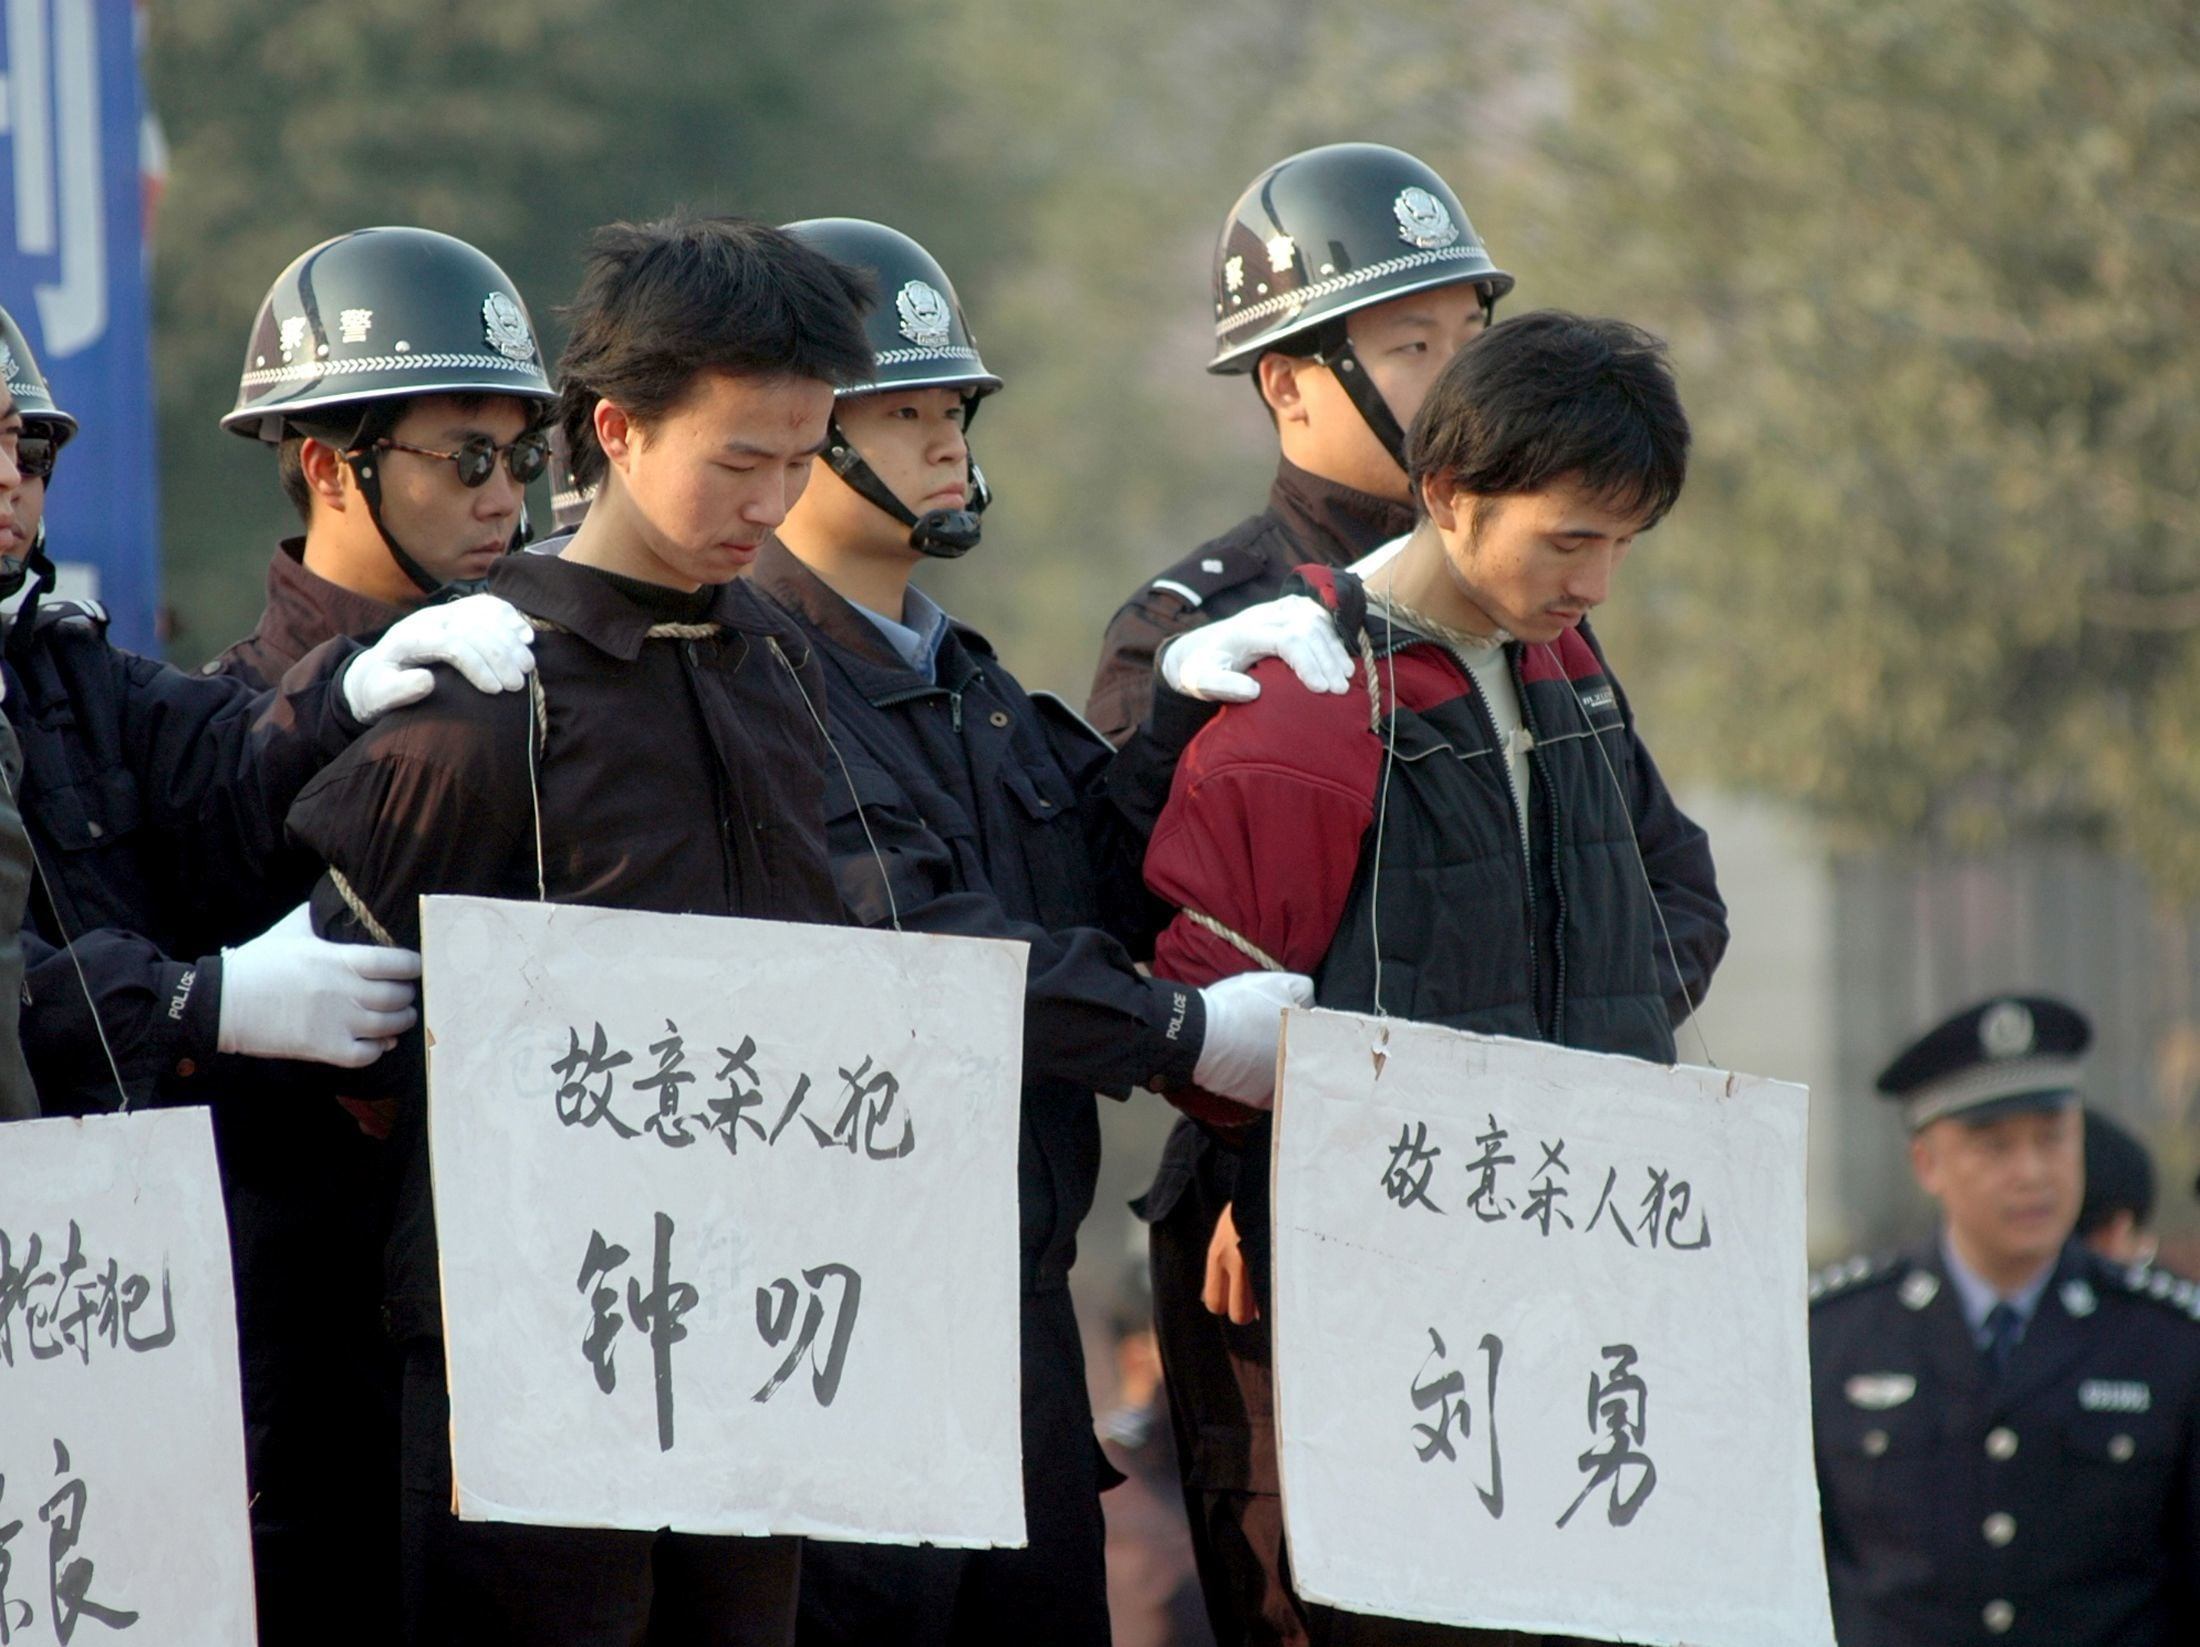 China, Middle East dominate executions in 2020: Report